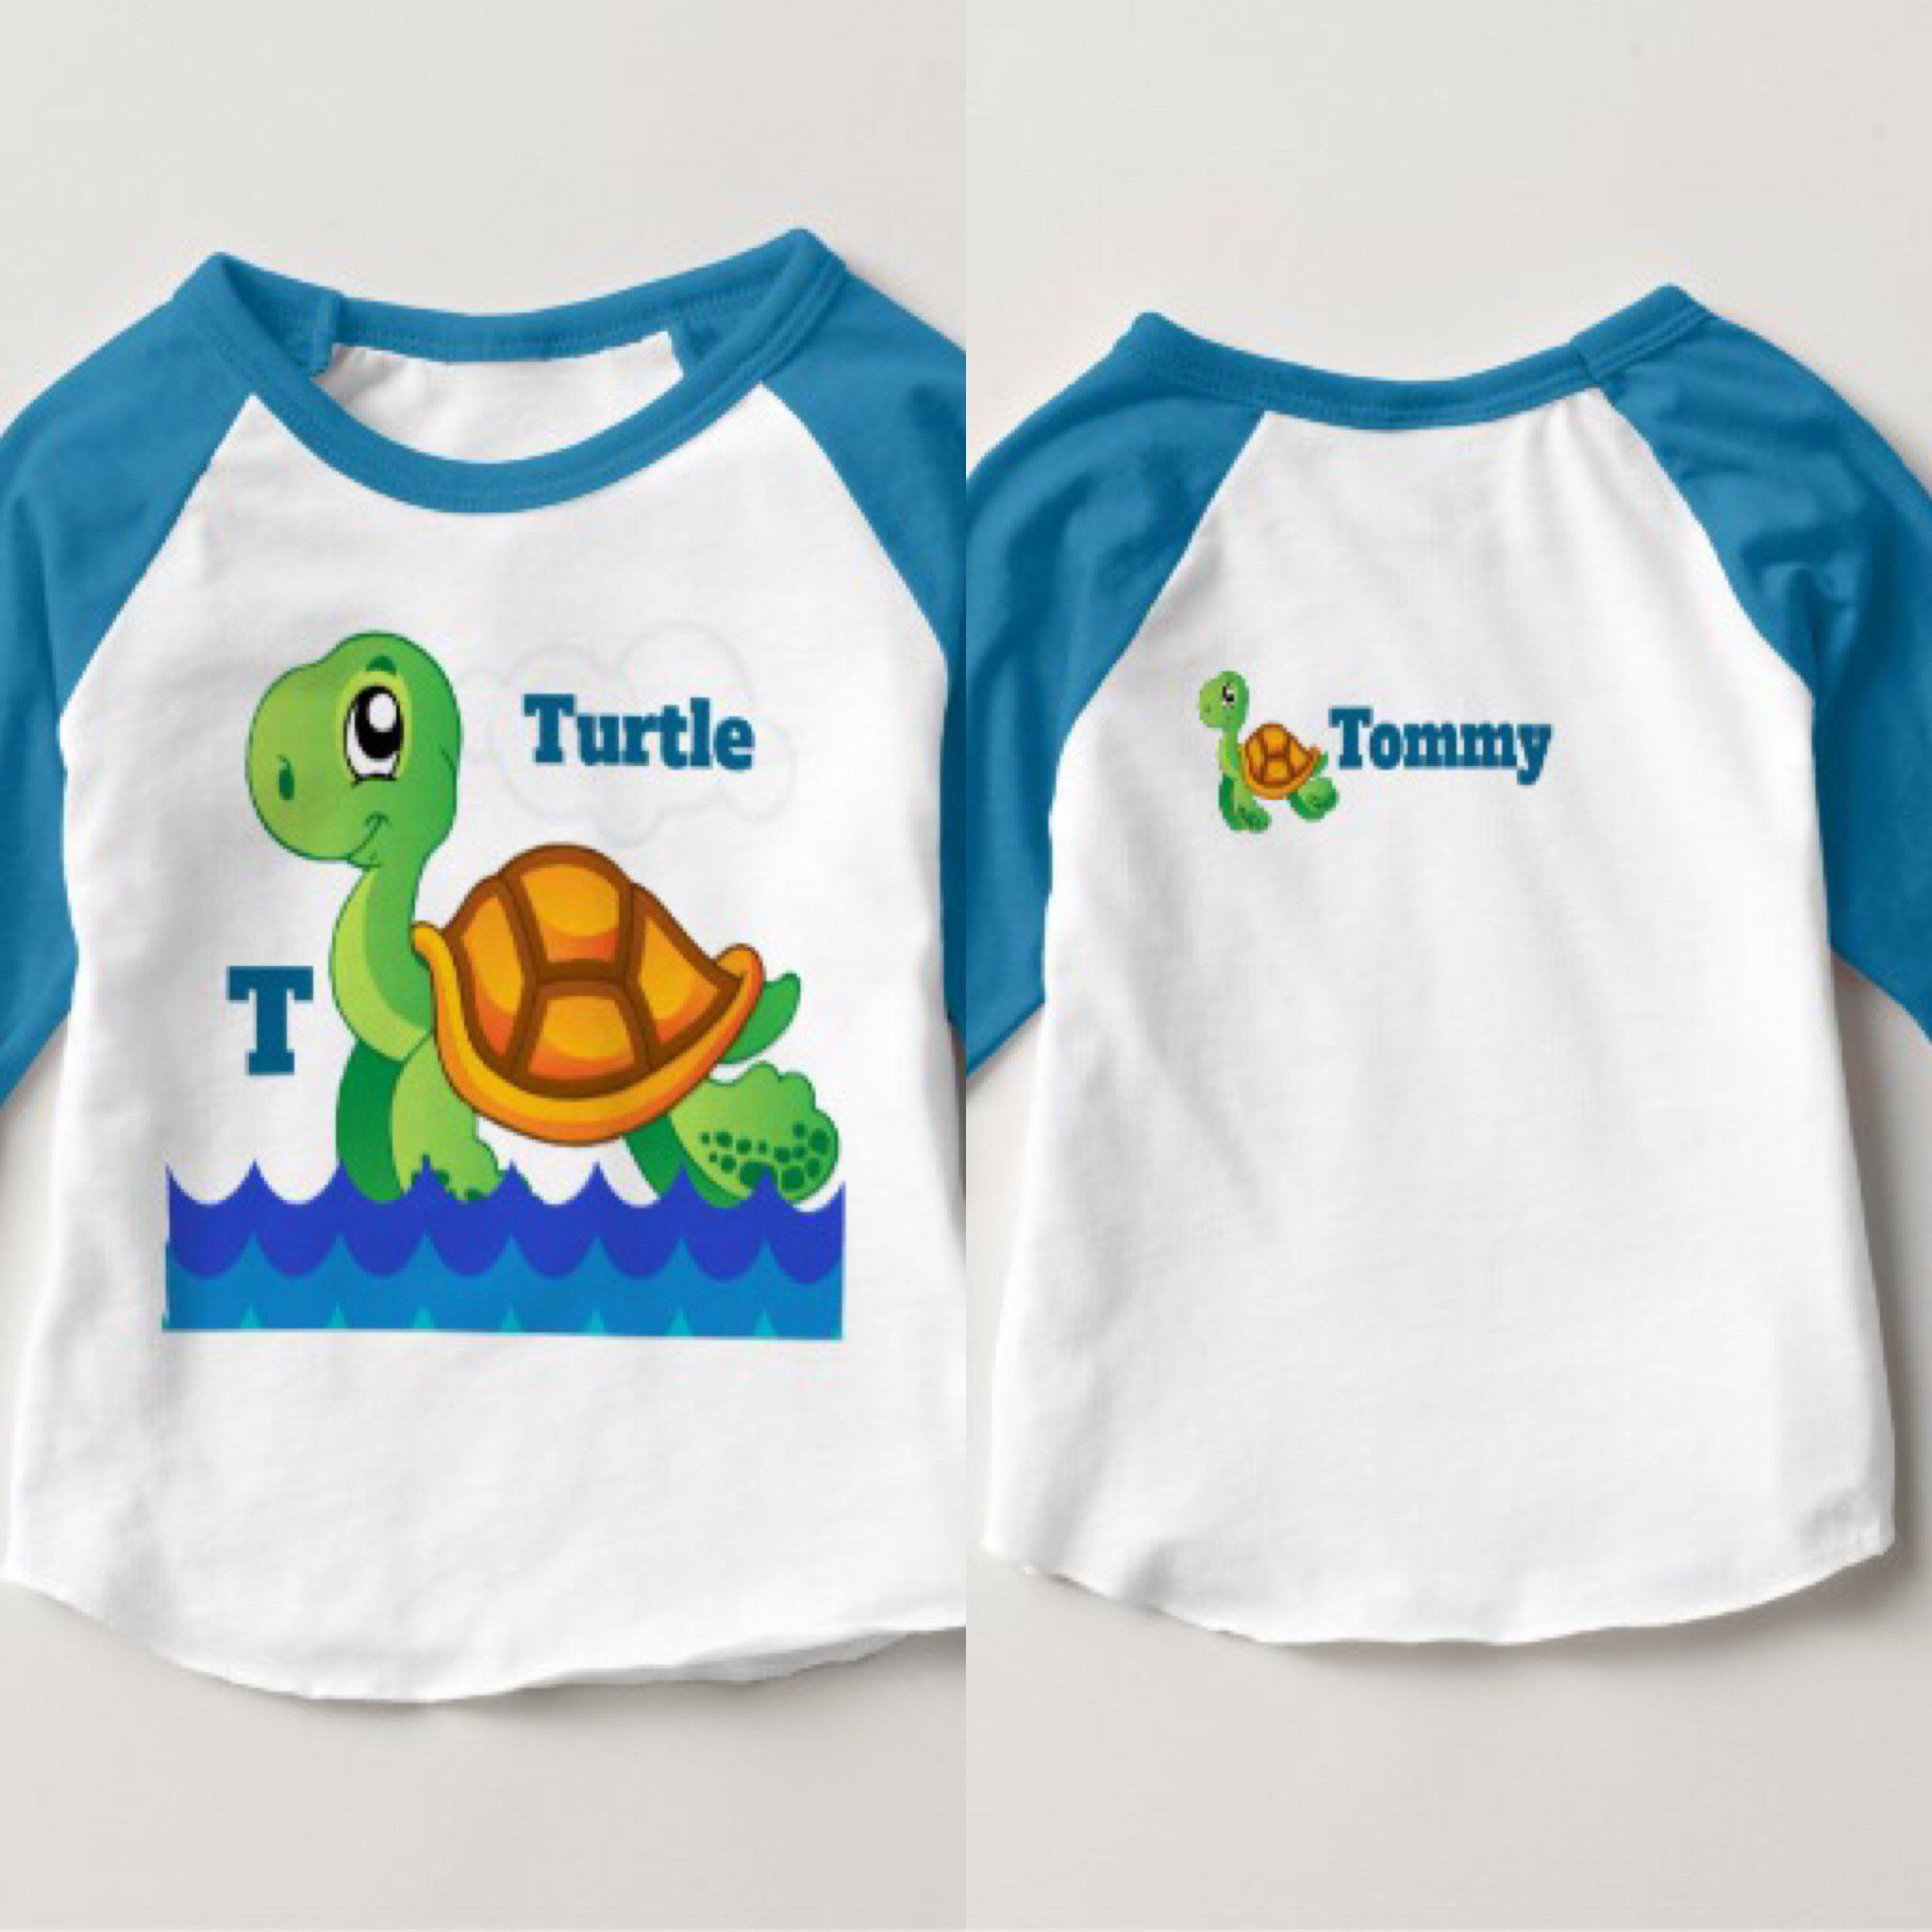 #Alphabet #T For #Turtle #Baby #Raglan #T-Shirt #Anerica #Apparel #Gift #Clothes  https://t.co/0DfOn6kCp7 https://t.co/UZWUaijNIA